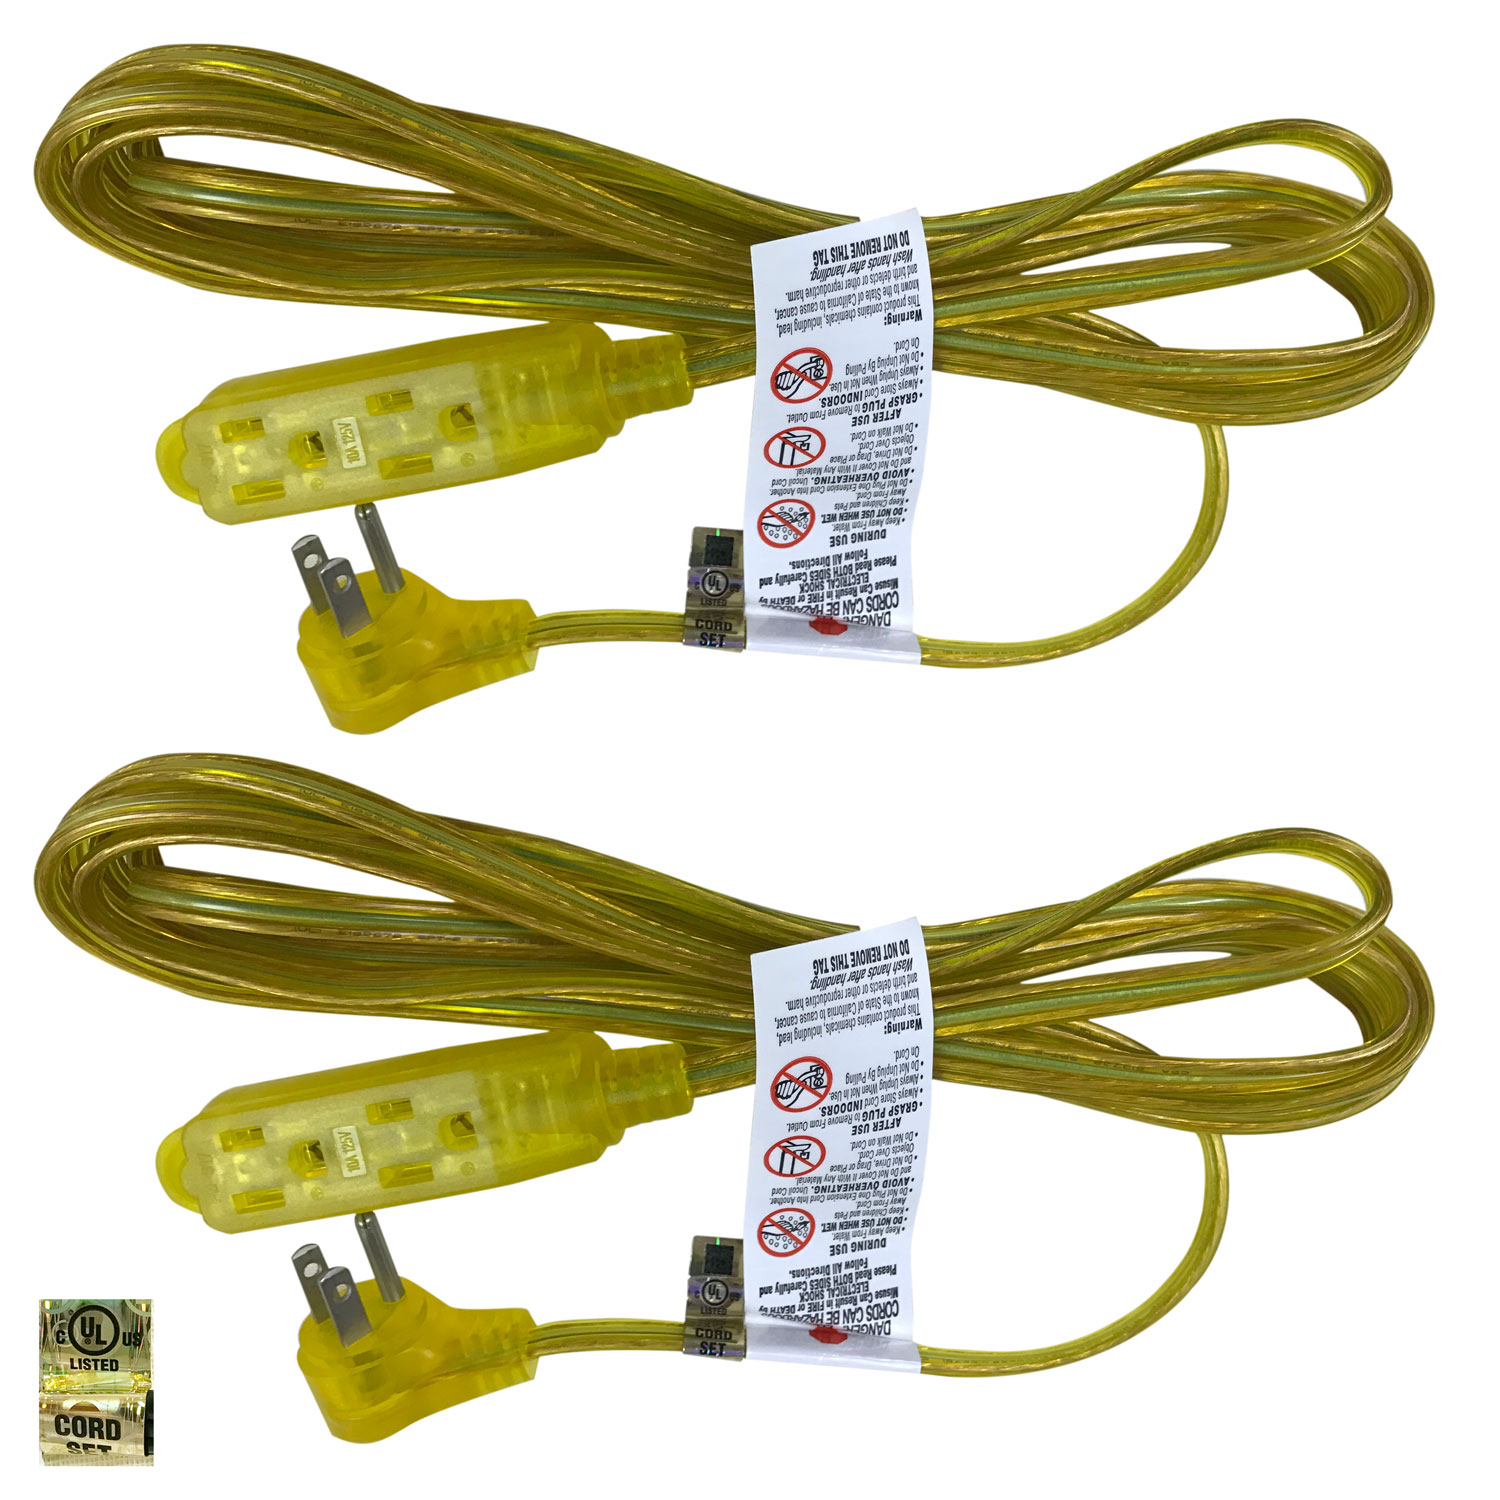 Royal Designs Set of 2 Gold Extension Cords 8 Ft. 3 Prong 18 Gauge Indoor Outdoor Use